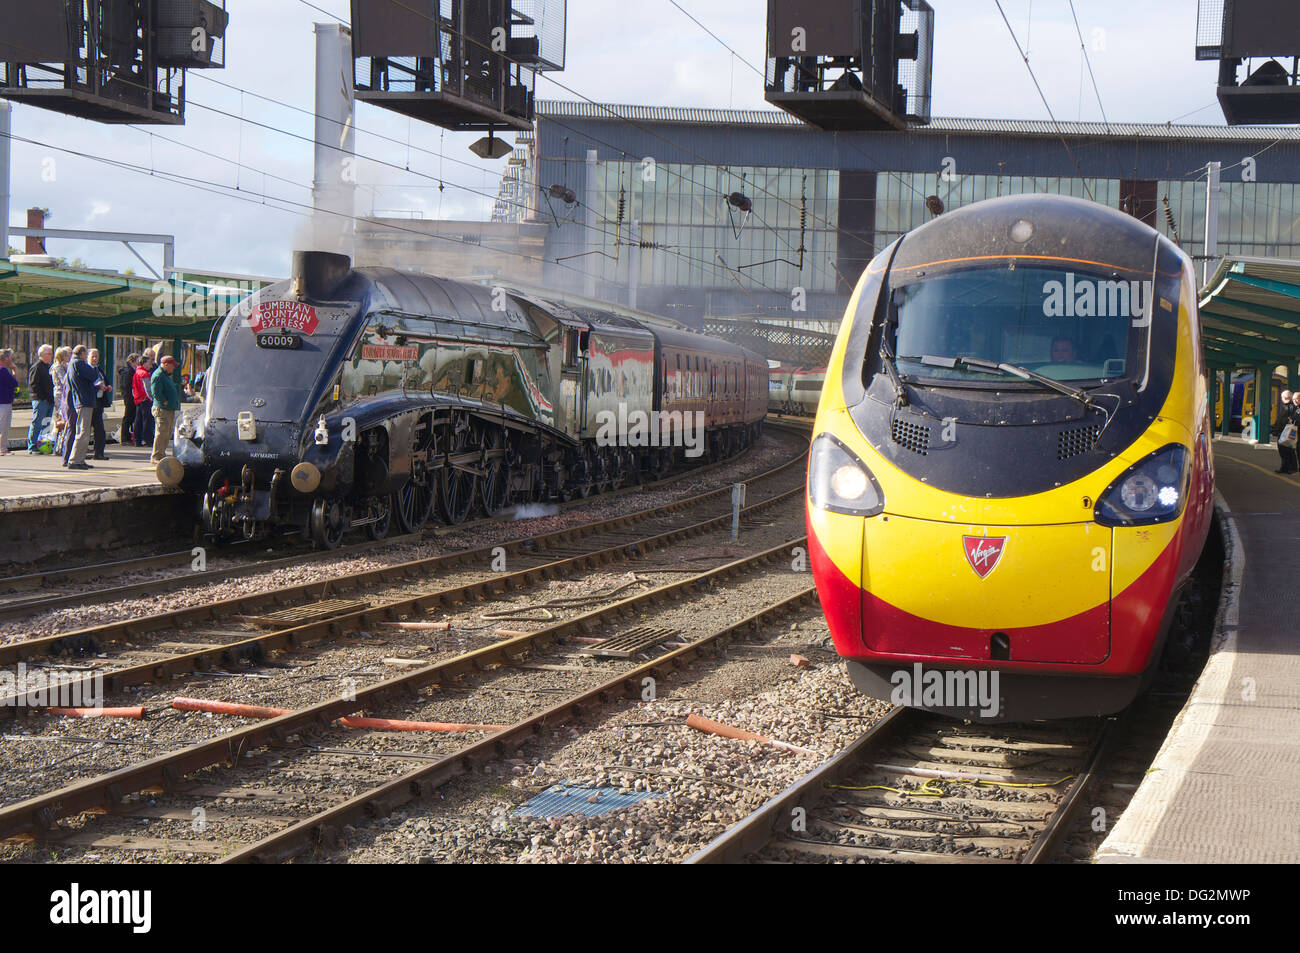 Virgin Pendolino and Steam locomotive 'Union of South Africa' 60009 special charter train in Carlisle Railway Station, Cumbria. - Stock Image